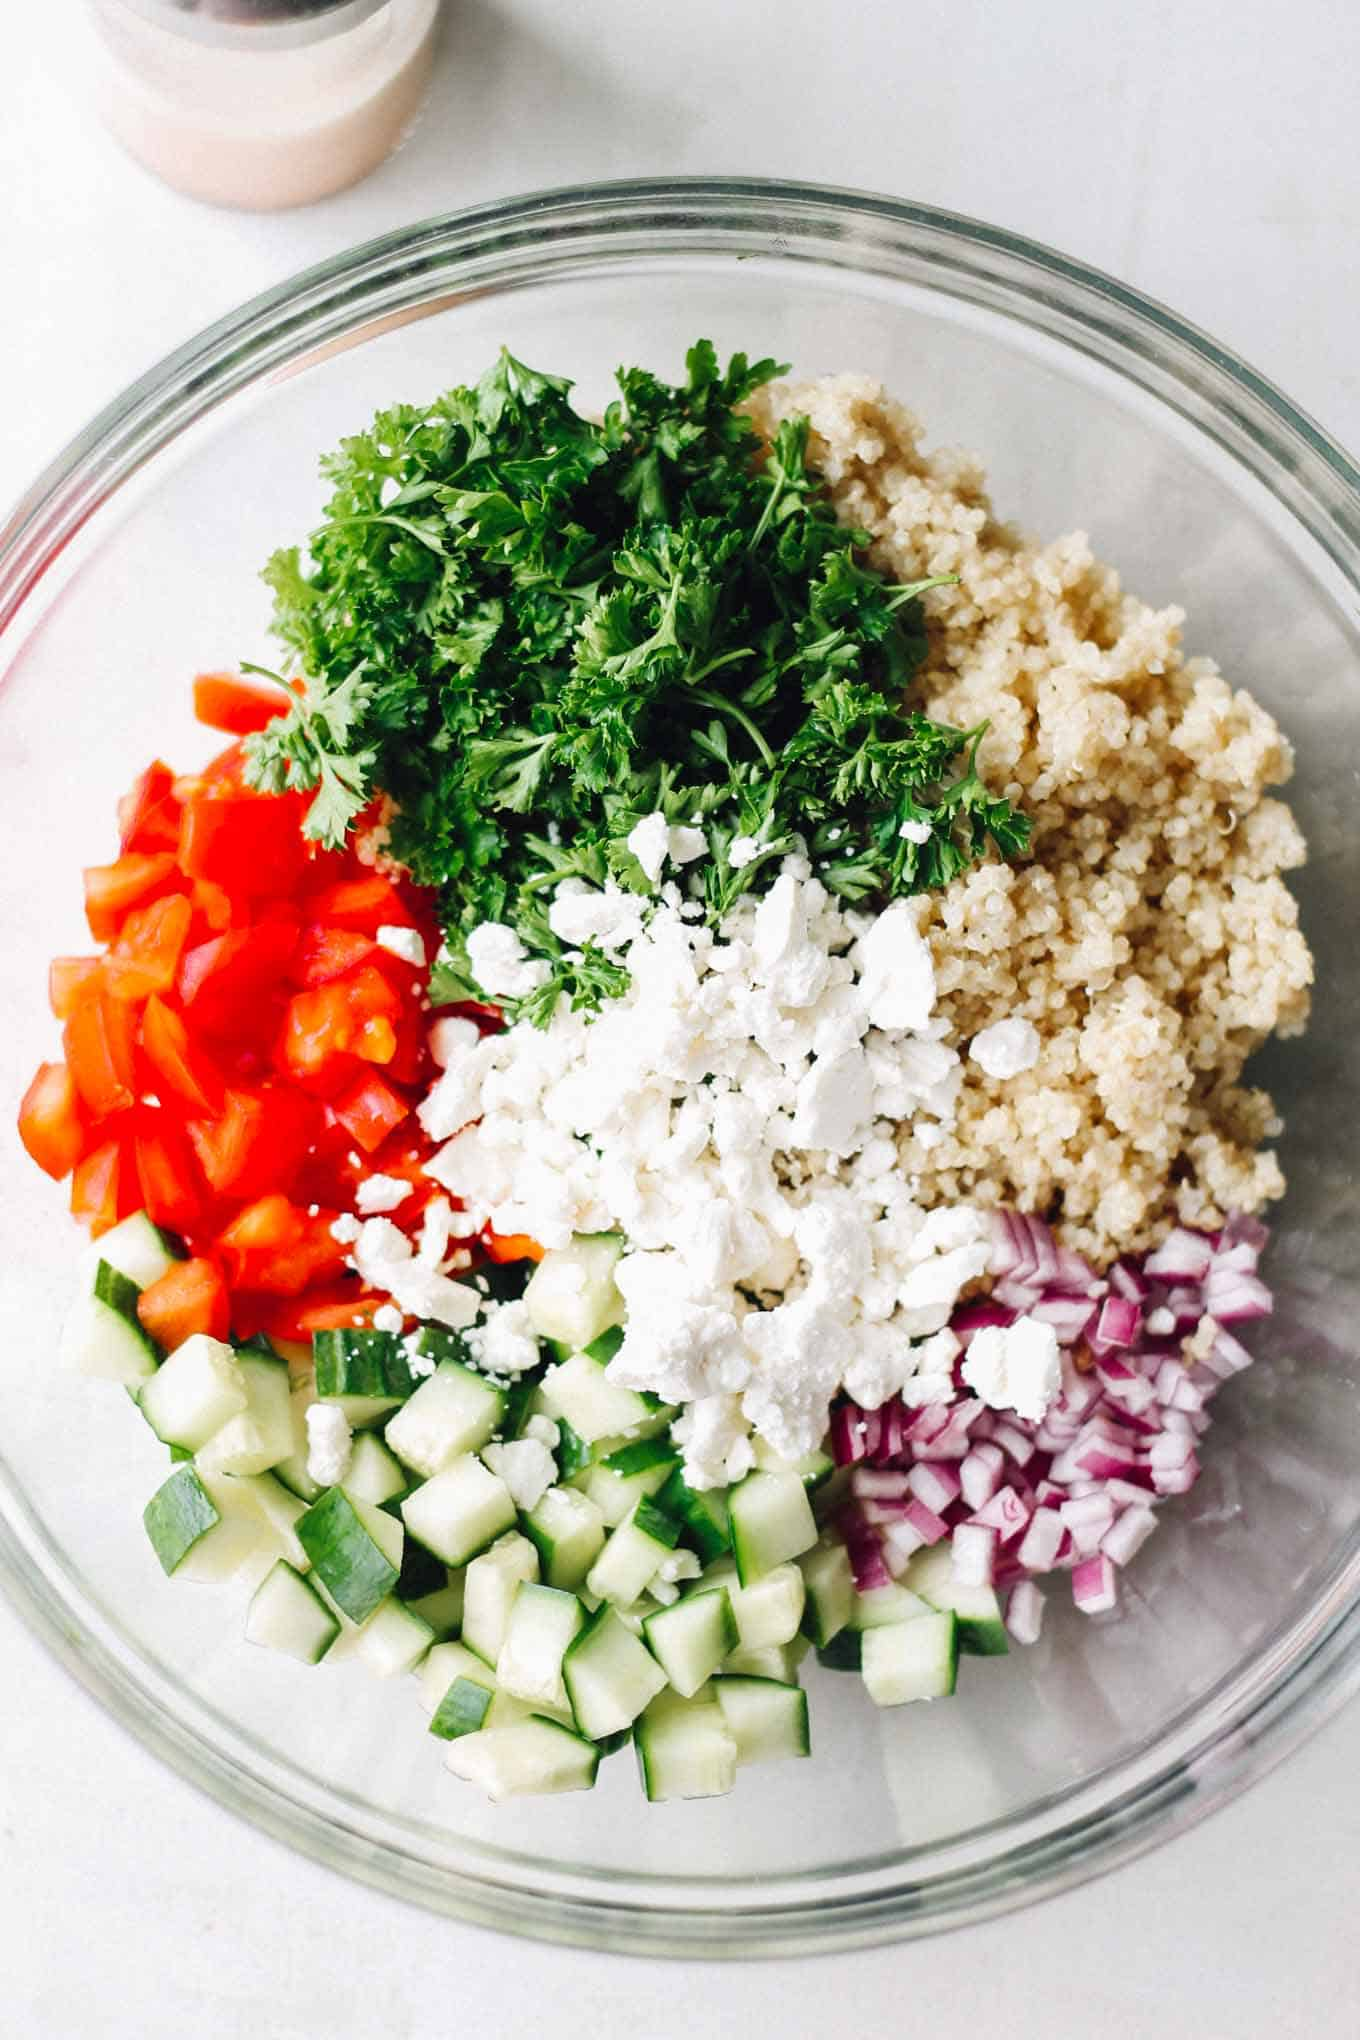 Quinoa, red onion, cucumber, tomatoes, parsley, and feta in a glass bowl before tossing the salad.